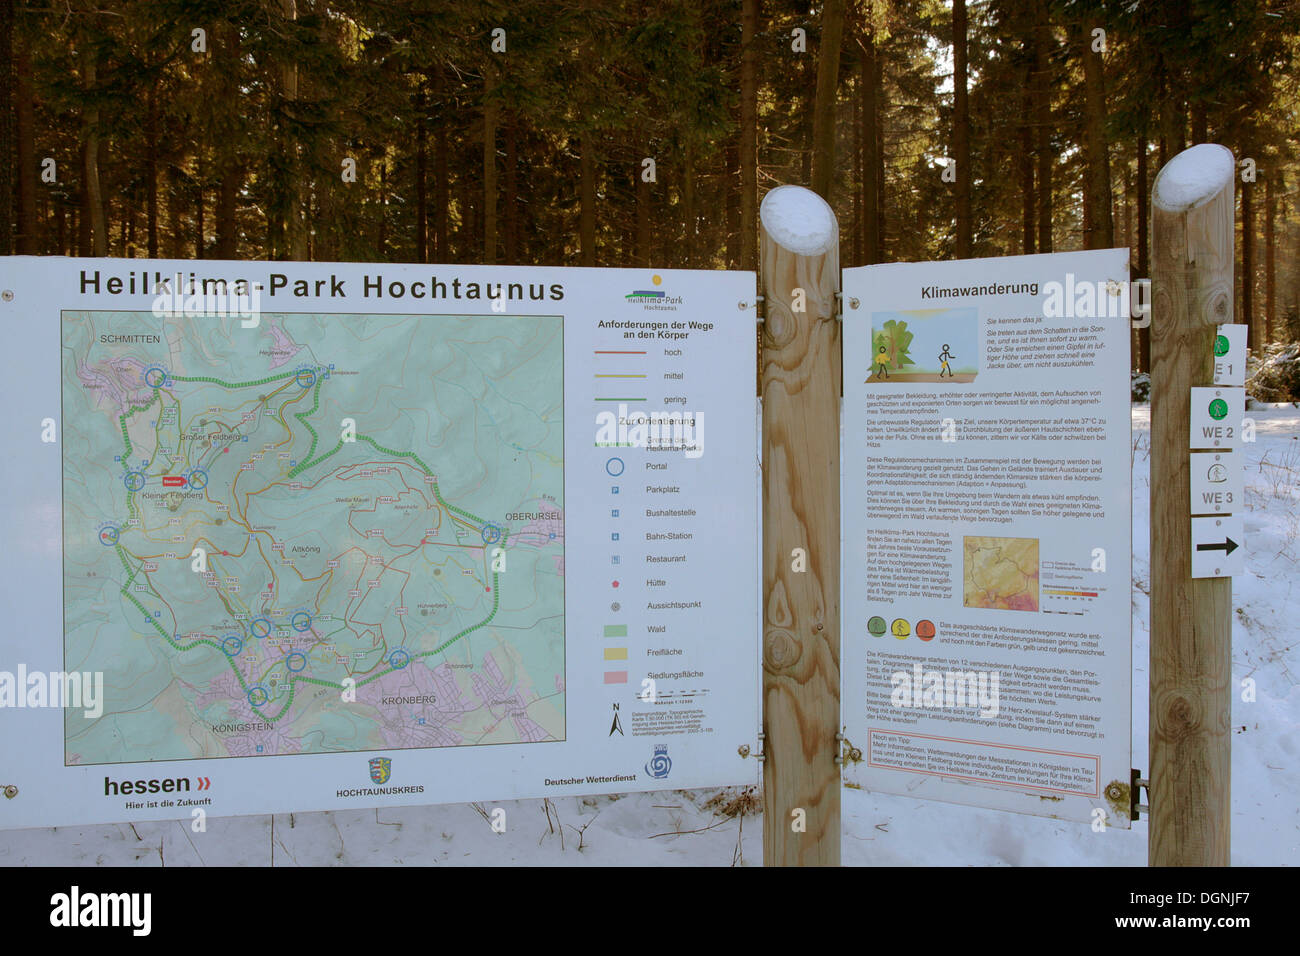 Information board, Heilklimapark, healing climate park and climate hike route in Hochtaunus in winter, Kleiner Feldberg - Stock Image